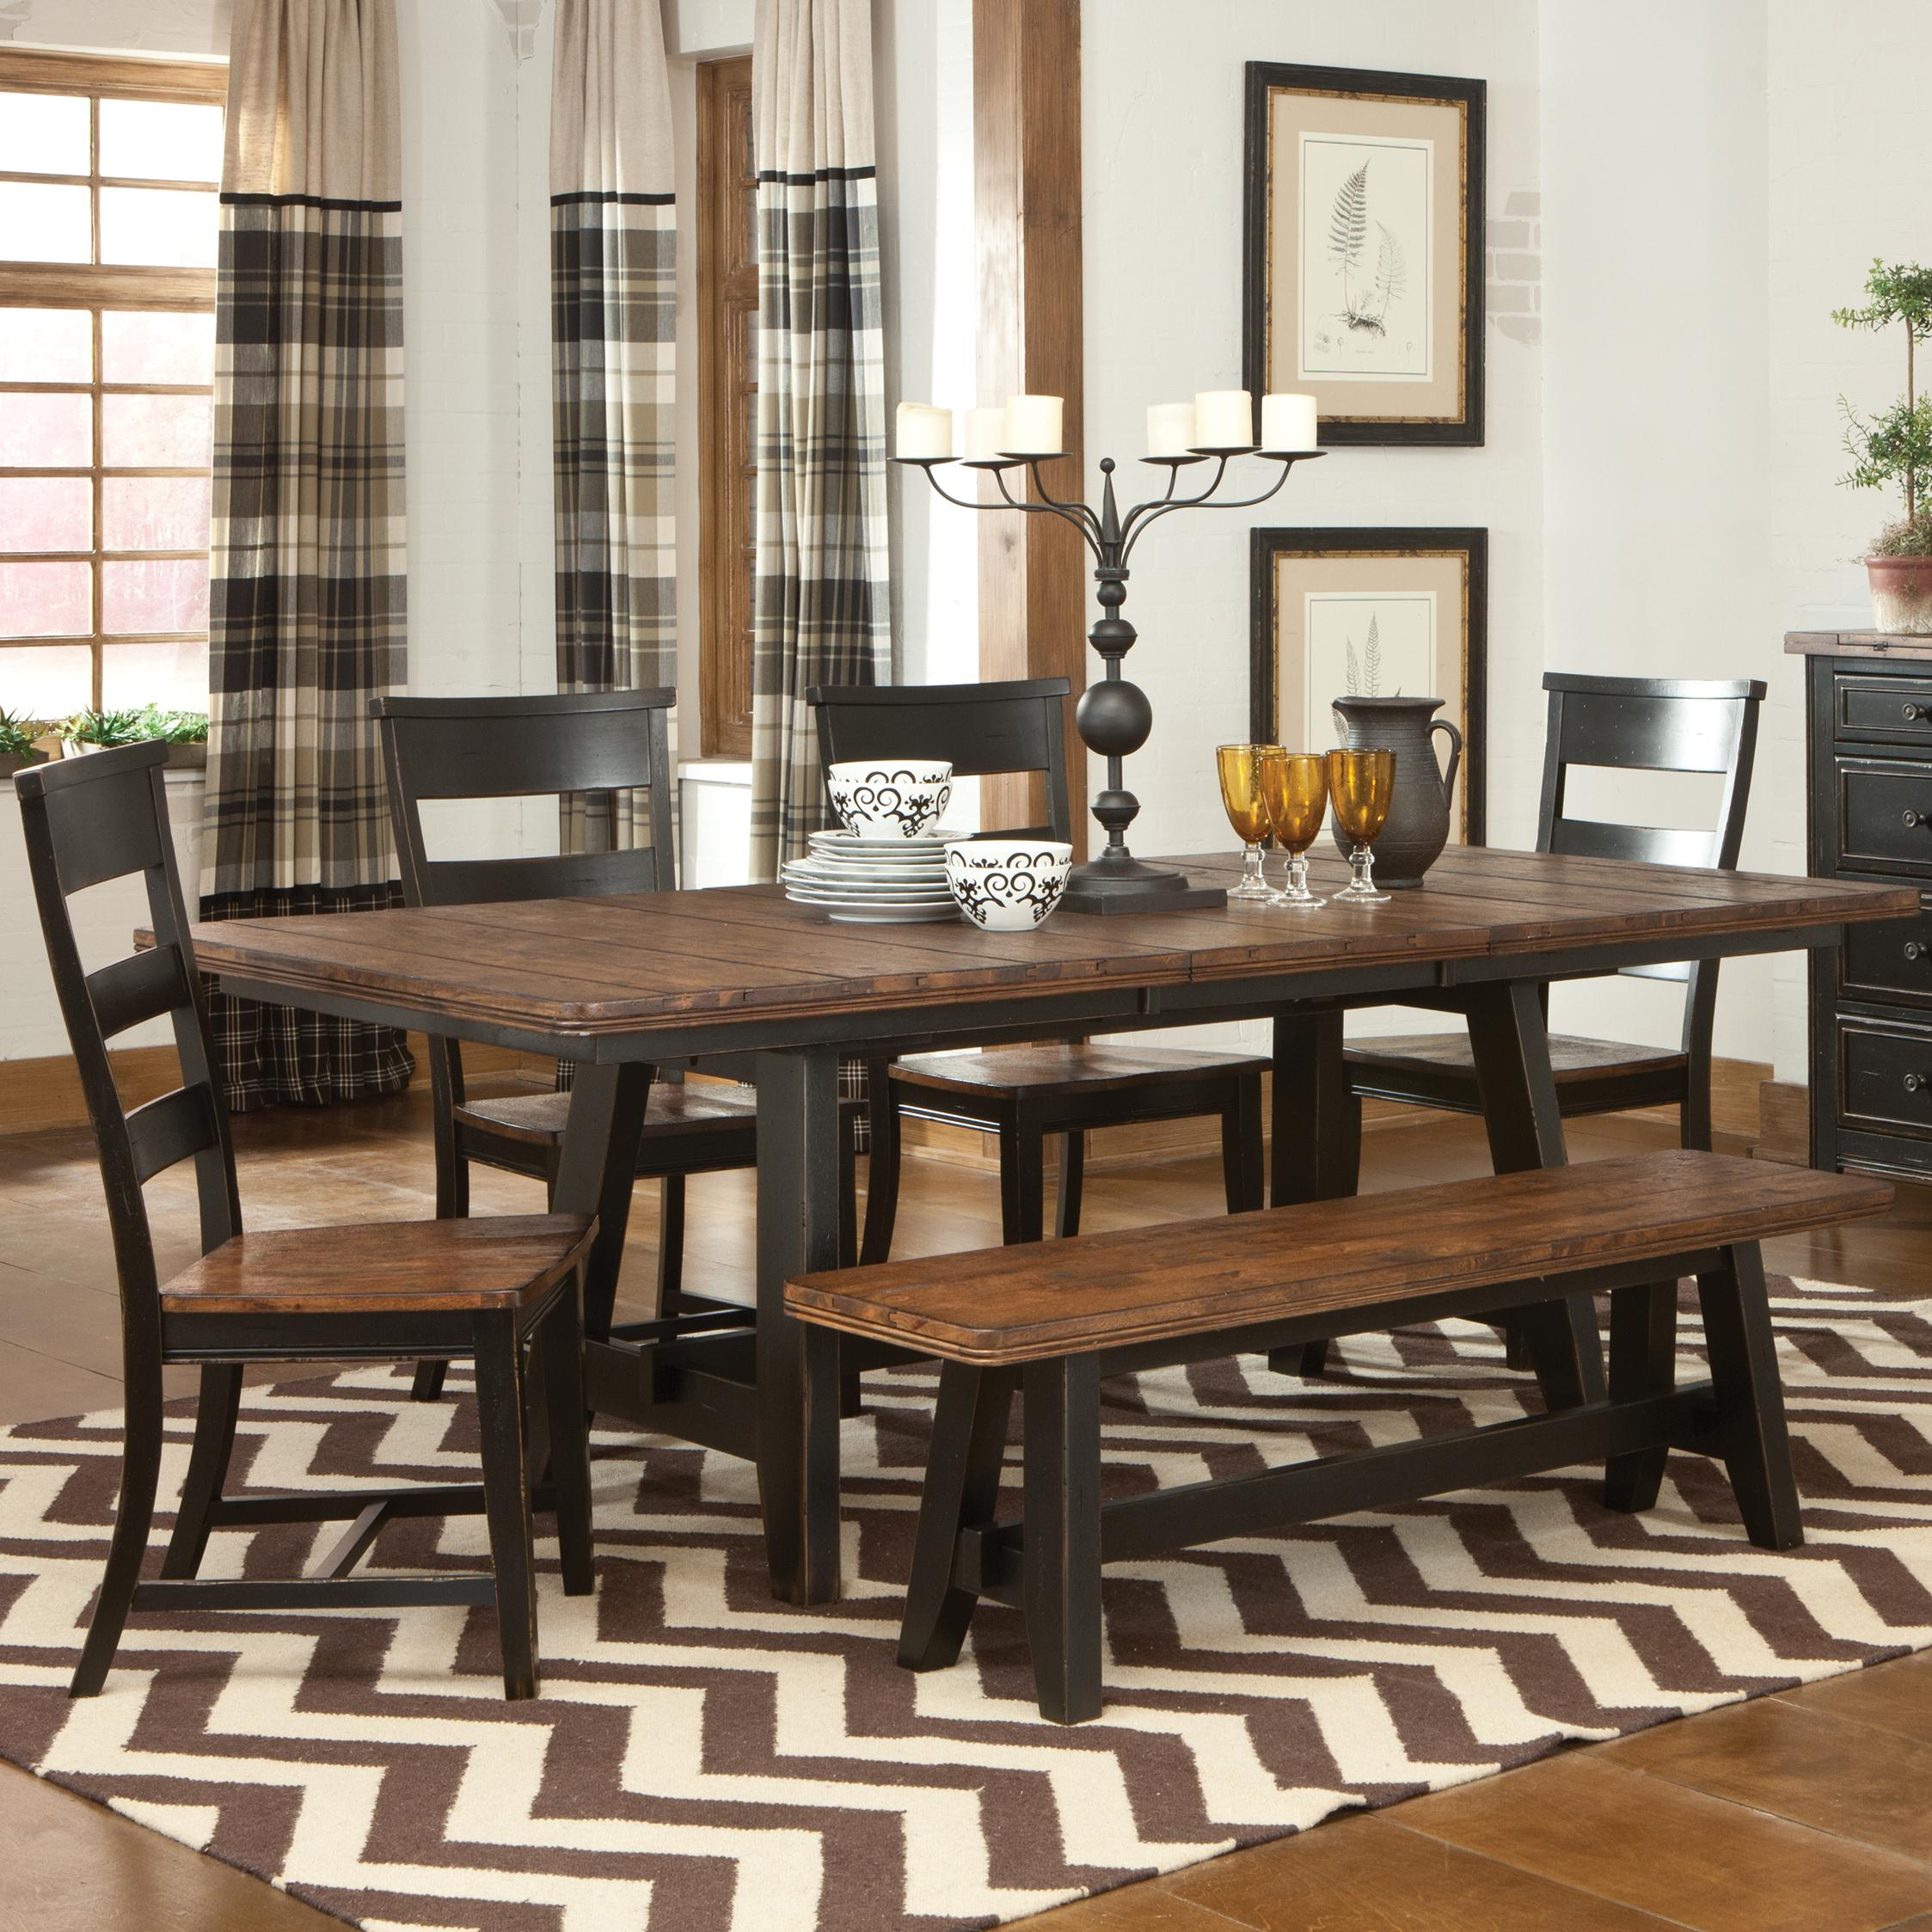 Dining Room Furniture Bench: Most Comfortable Dining Chairs For Your Longer Dining